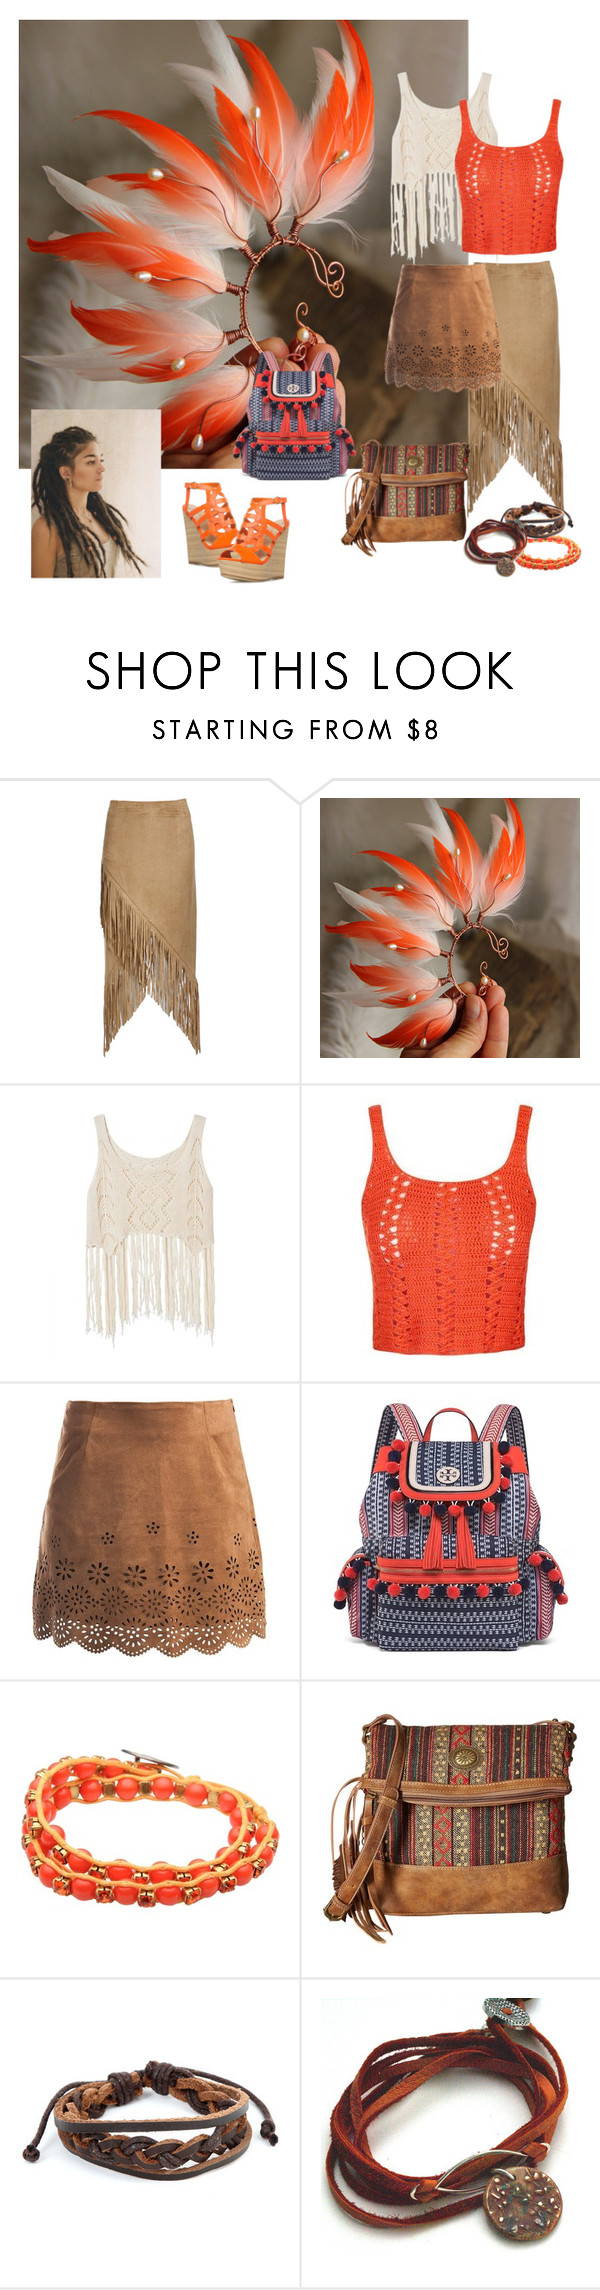 """Tribal Dance"" by nastasy-eu ❤ liked on Polyvore featuring Nightwalker, Topshop, Sans Souci, Tory Burch, MIVIU, American West and West Coast Jewelry"